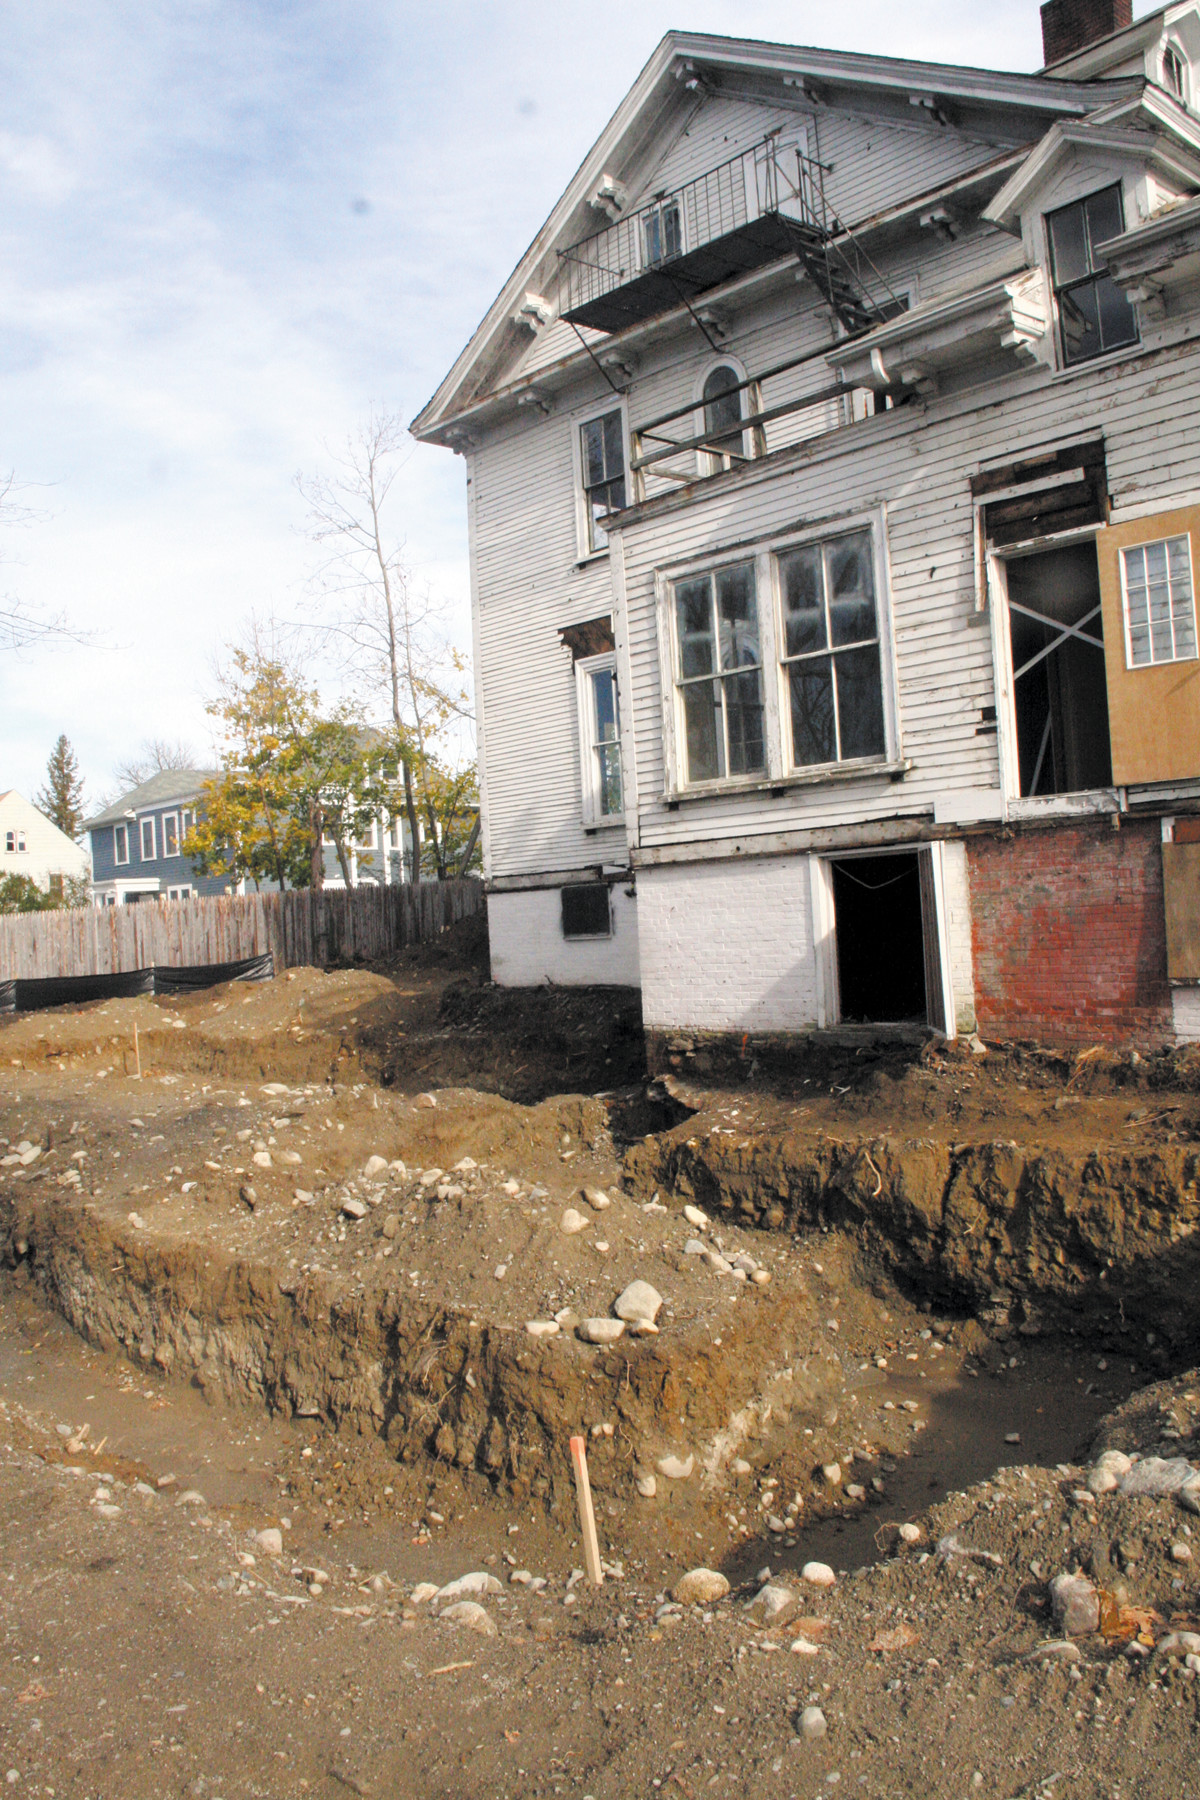 MAKING ROOM: Excavation for the foundation of a 5-unit addition on the back of the house is nearly completed. The hope is to have it done soon so work can continue through the winter.